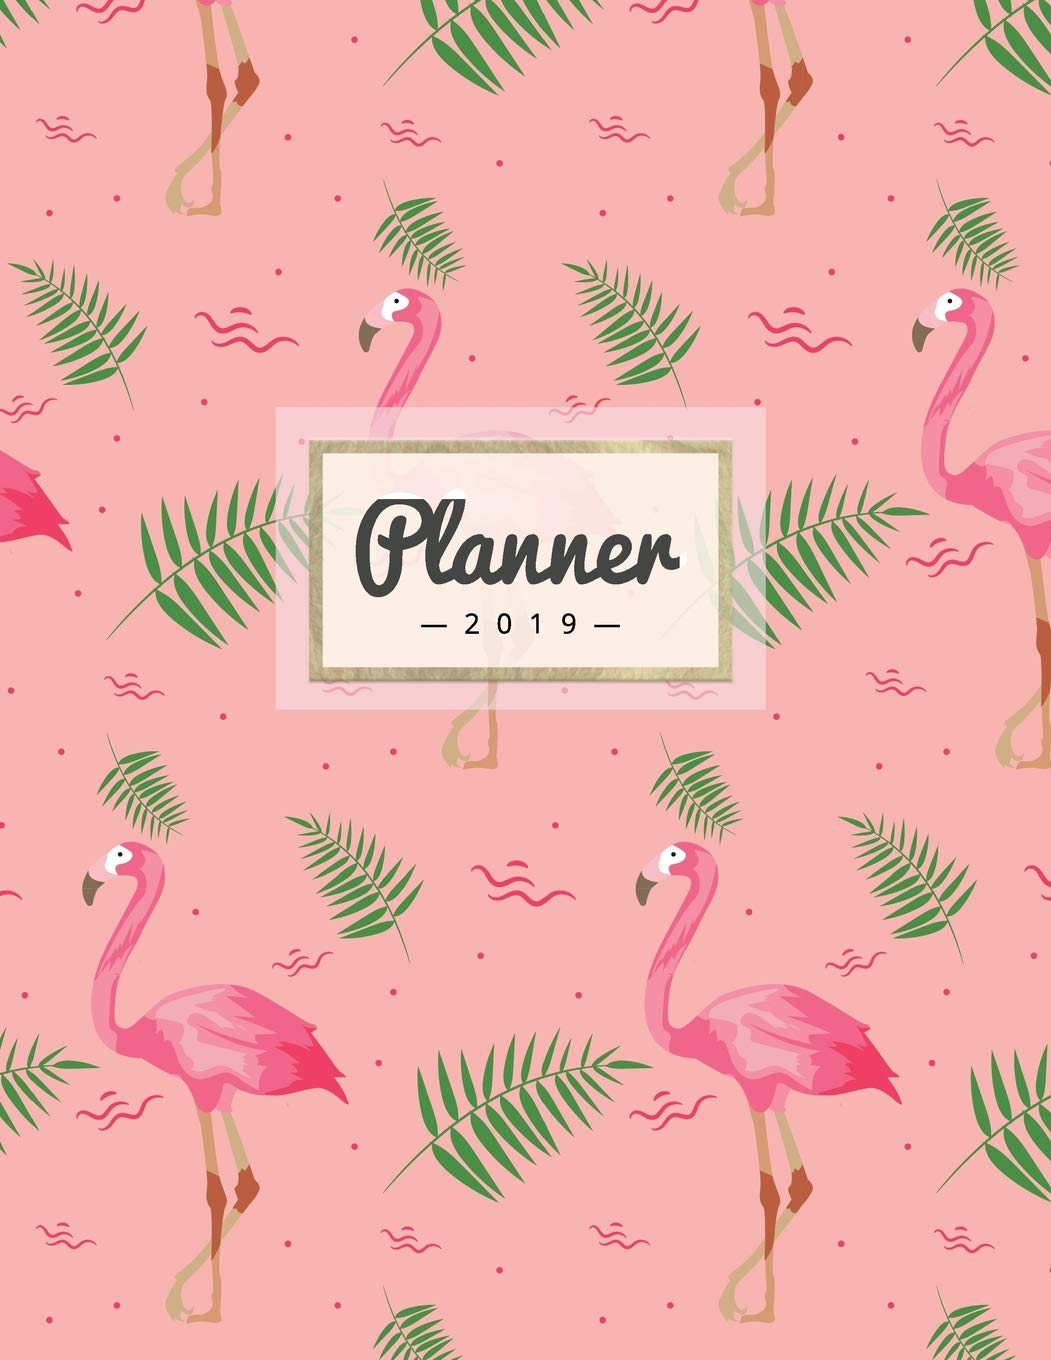 Calendar Pages To Print 2019.Planner 2019 Pink Flamingo Print Weekly Calendar Schedule